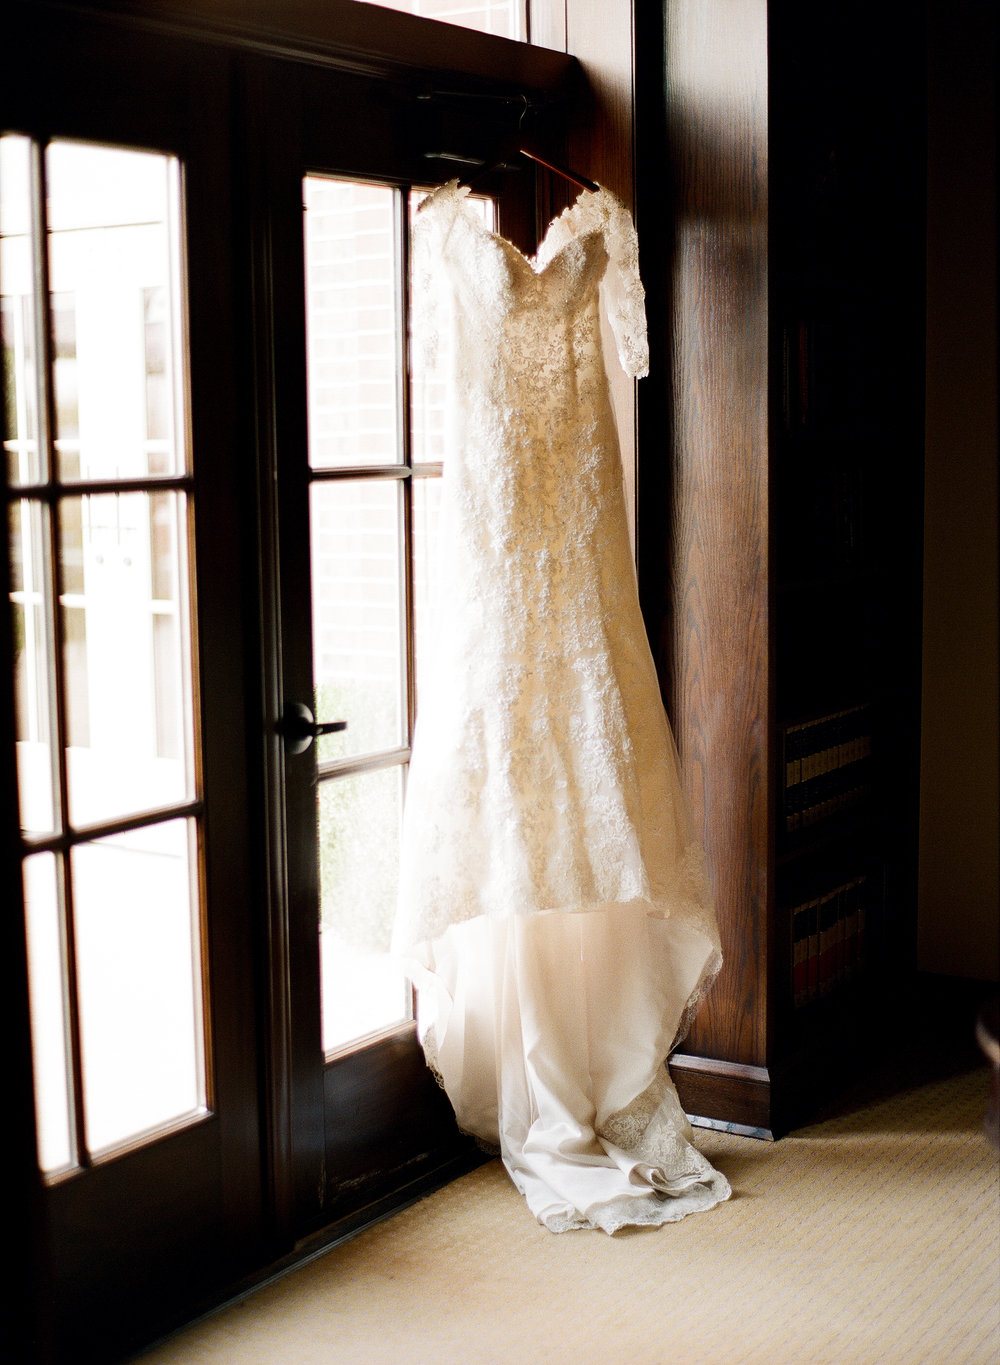 Magnolia Adams Photography | Bridal Gown